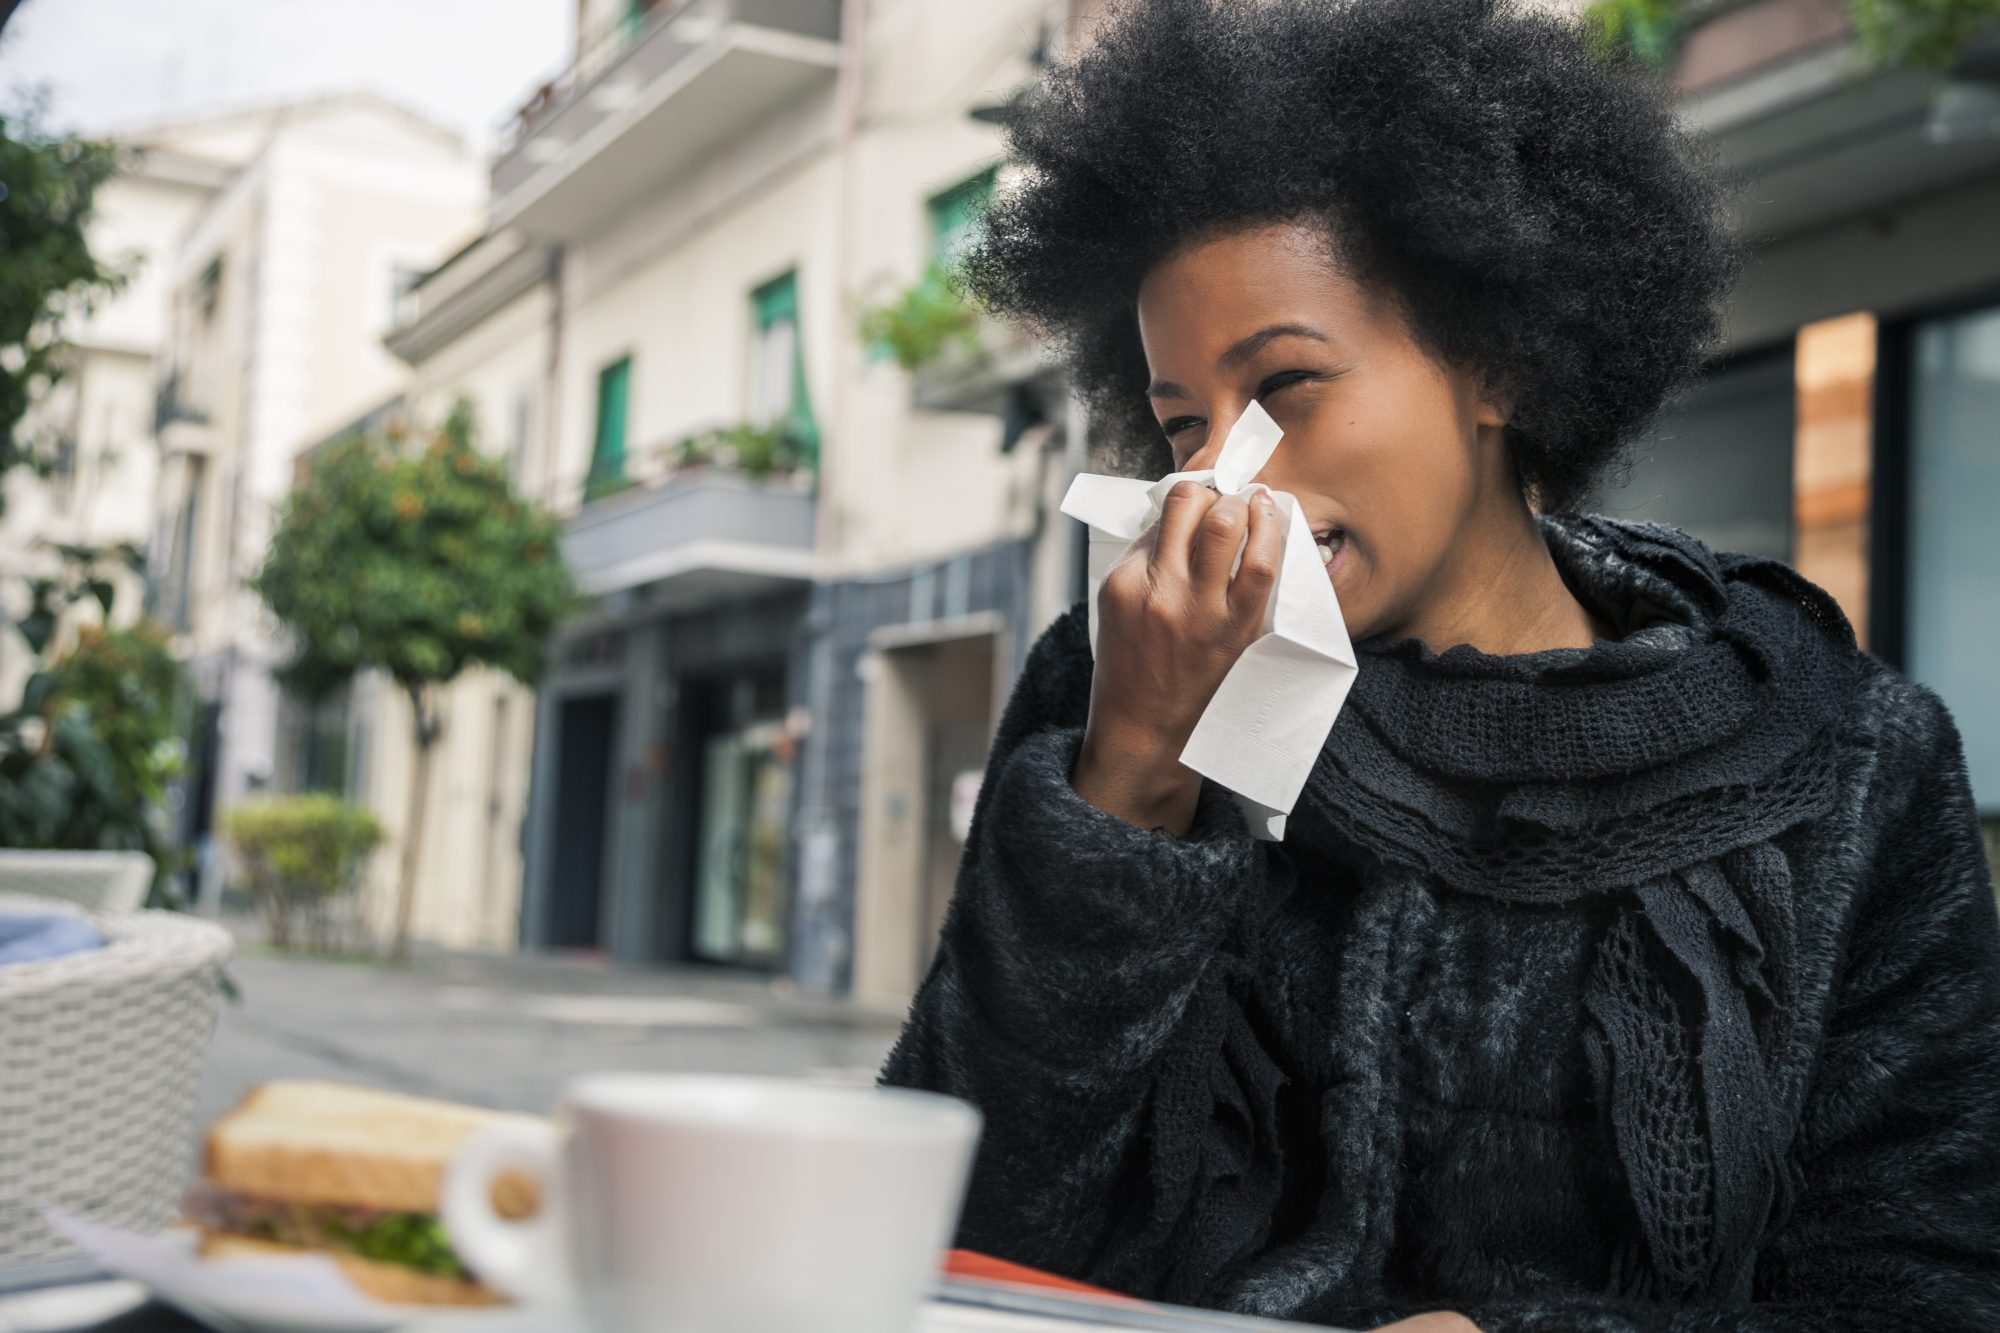 I'm coughing and sneezing.  How long is my cold or flu contagious?